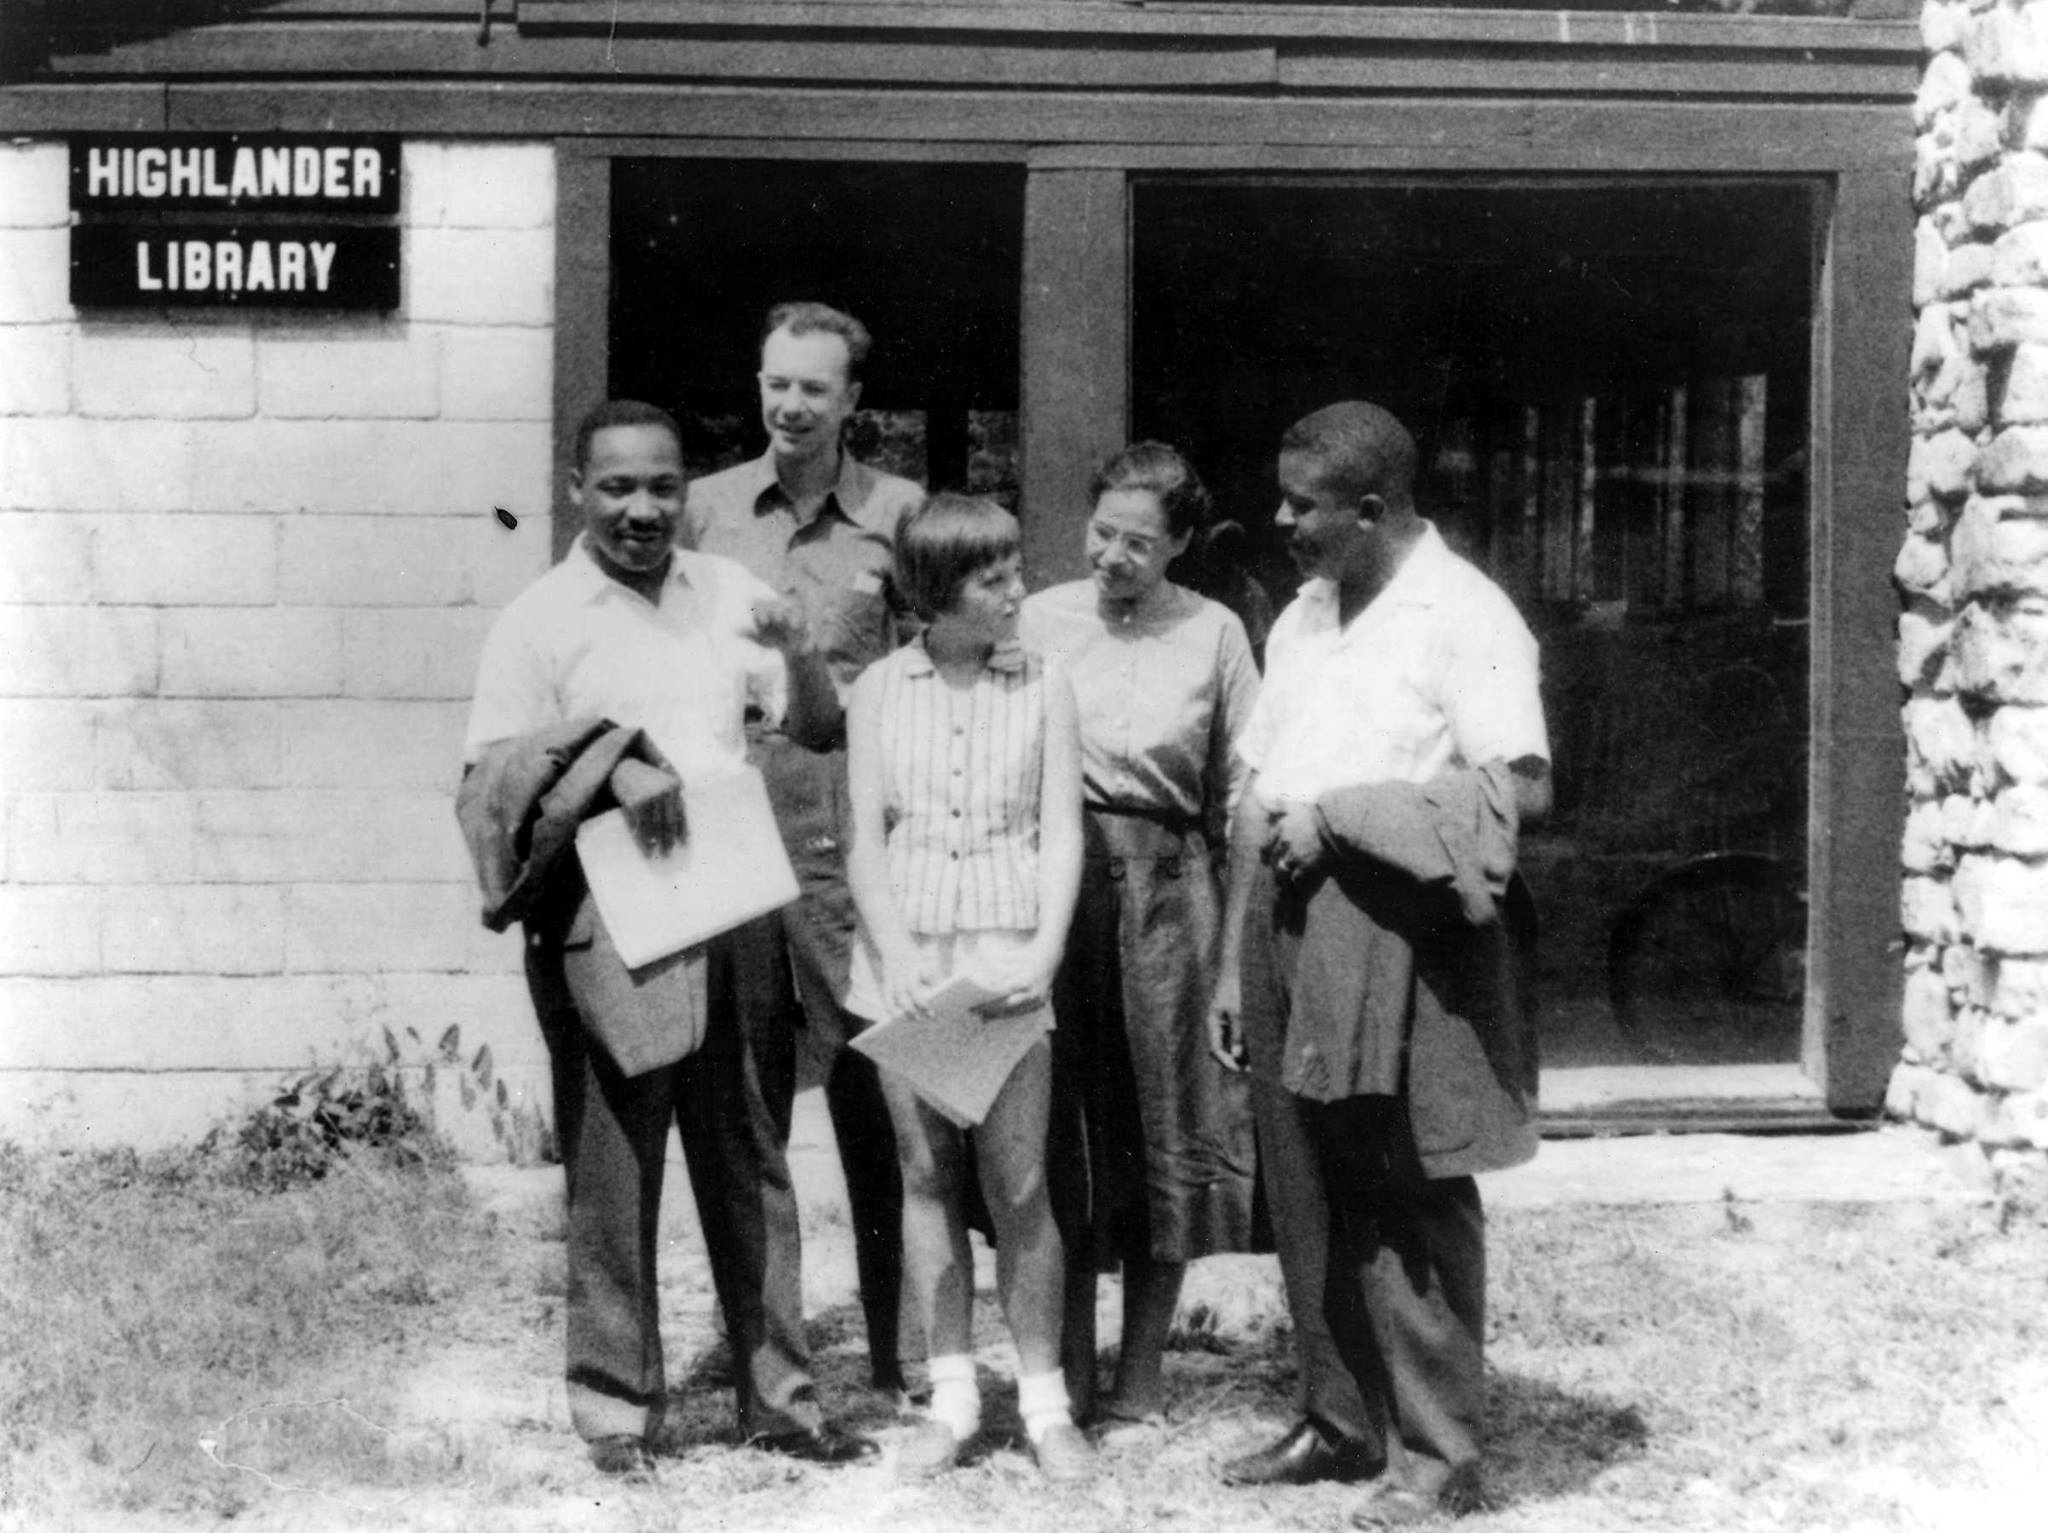 Dr. Martin Luther King Jr, Pete Seeger, Charis Horton, Rosa Parks, and Ralph Abernathy at Highlander Center in 1957.